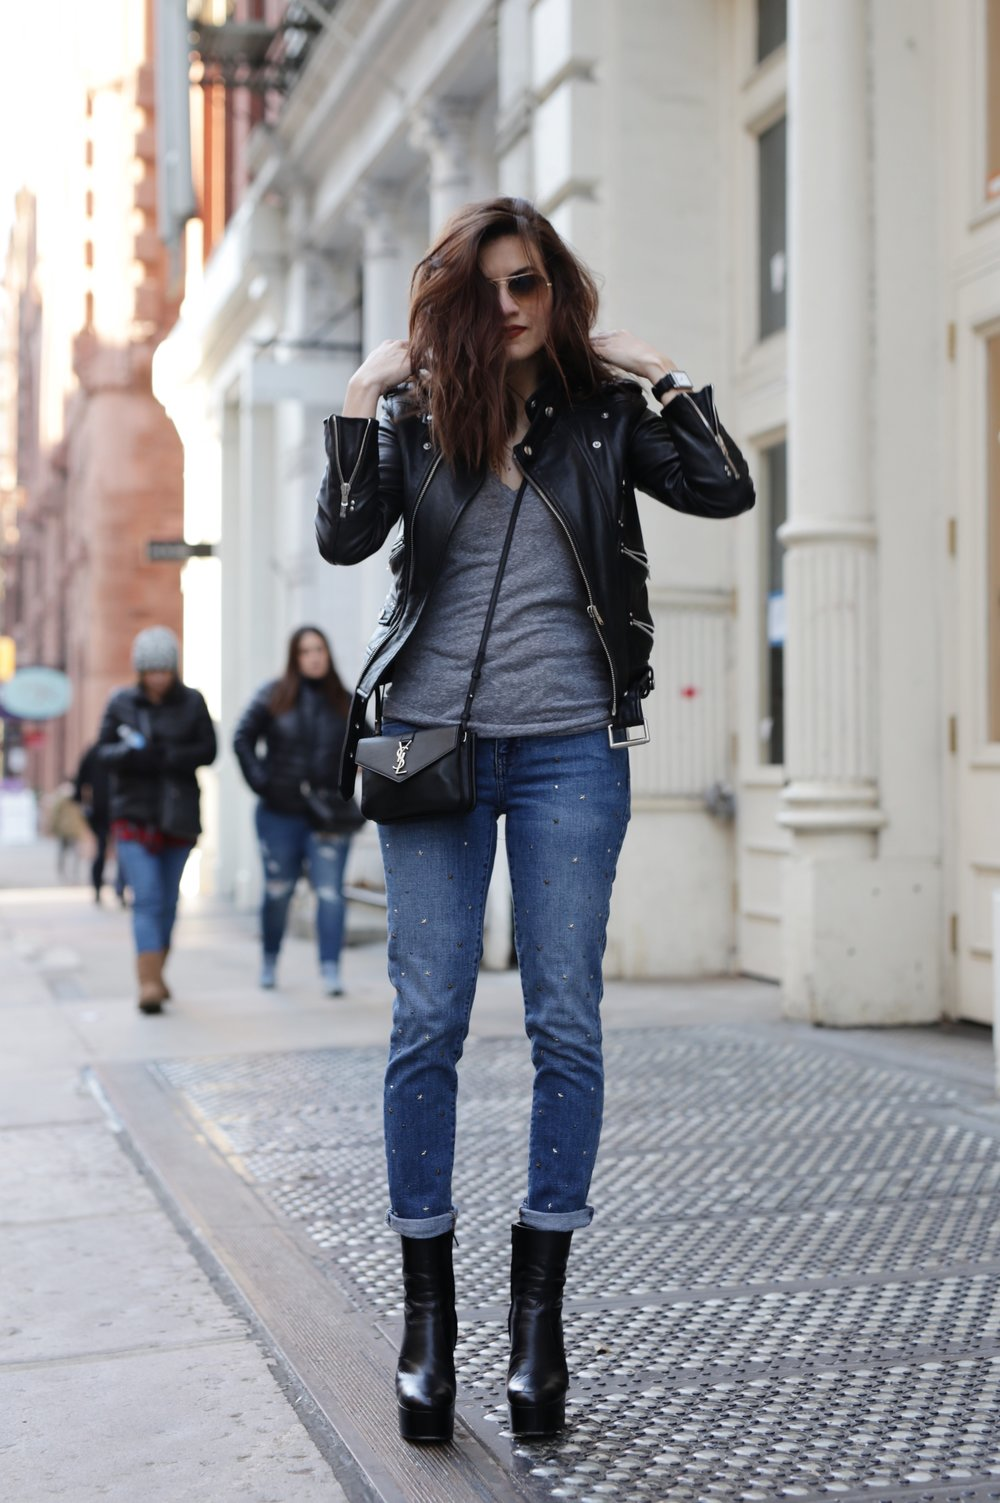 NYC street style - Saint Laurent platform boots, leather moto jacket from The Kooples, YSL cross body bag and Gap studded jeans_6953.JPG